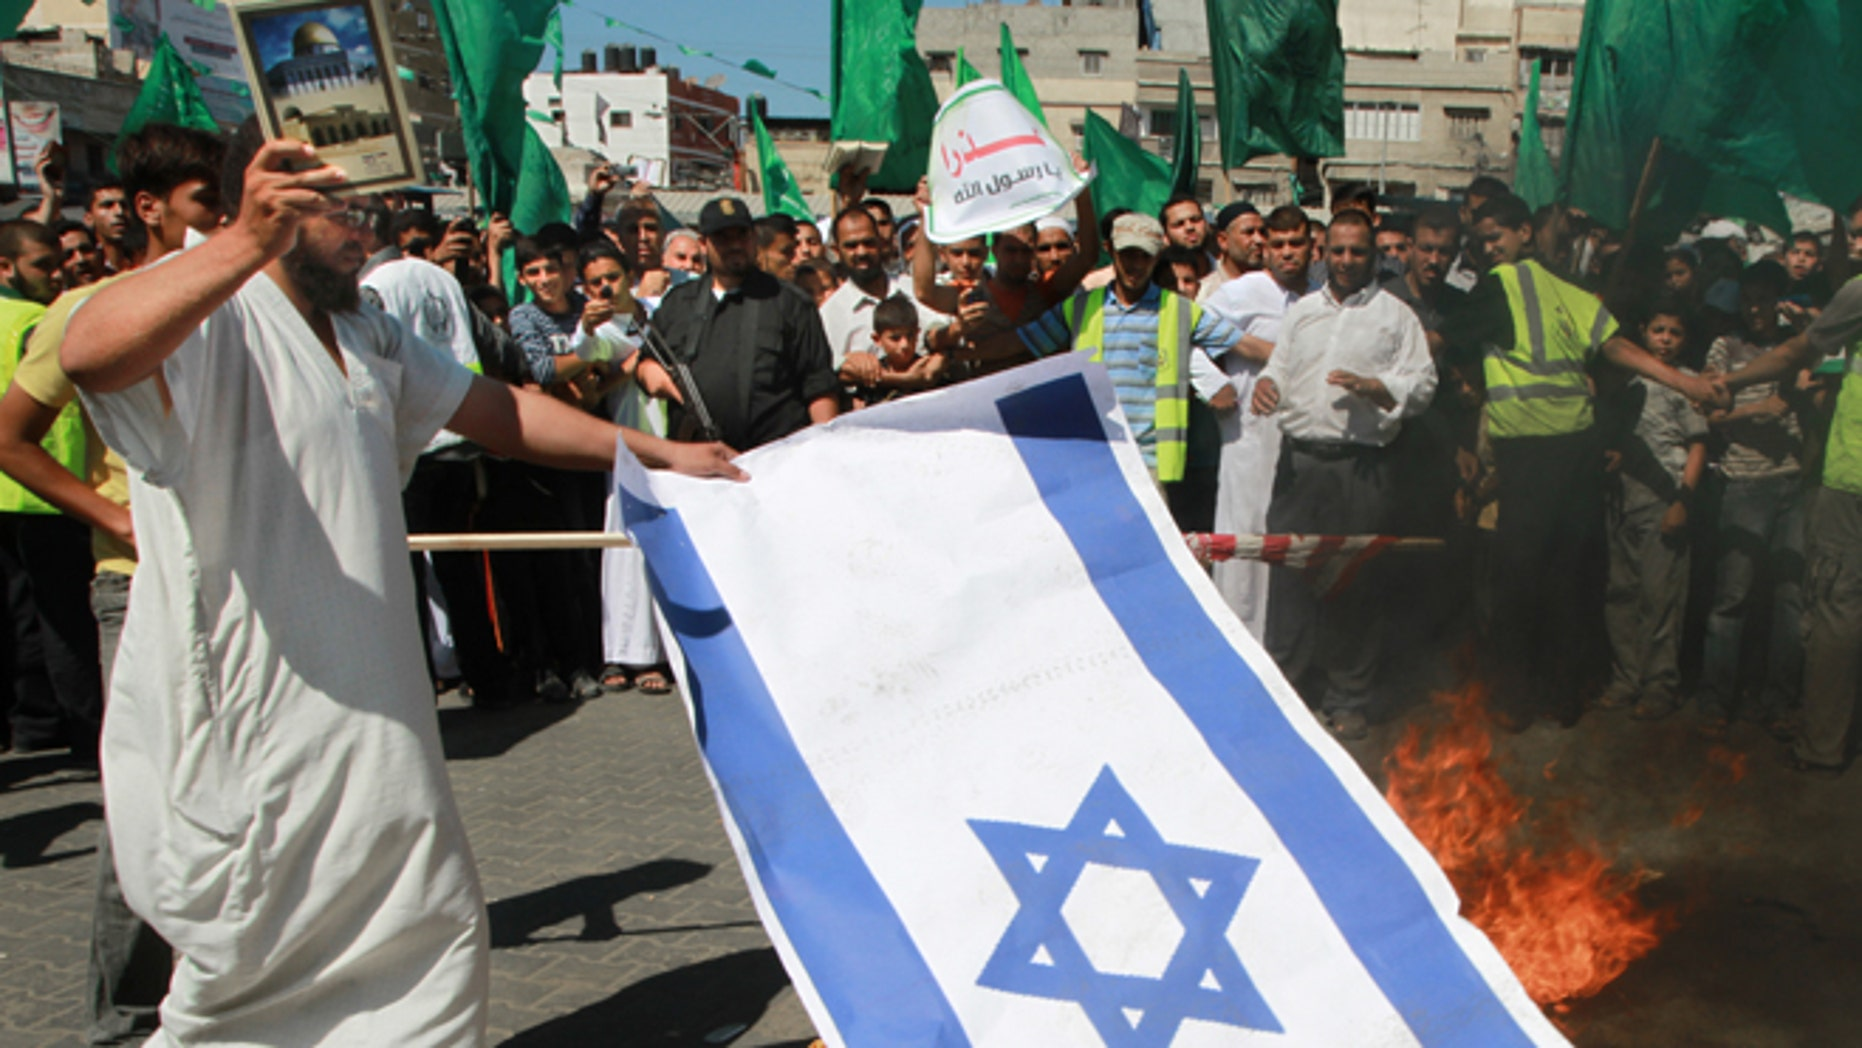 Sept. 14: A Palestinian Hamas supporter burns an Israeli flag, while holdings a Quran, Muslim's holy book, during a protest in Khan Younis, southern Gaza Strip.